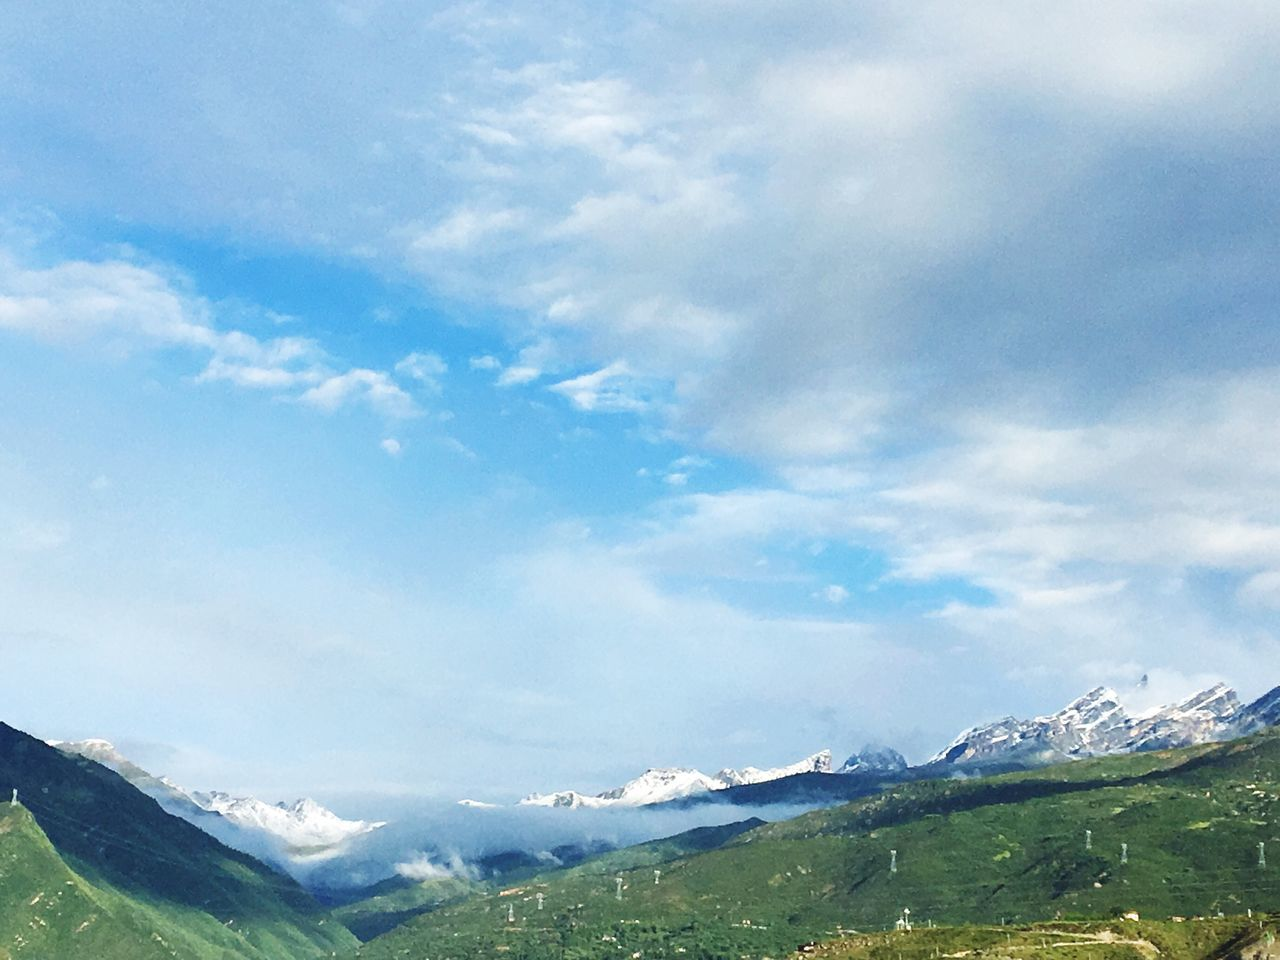 sky, mountain, scenics, nature, cloud - sky, beauty in nature, tranquil scene, tranquility, day, no people, outdoors, landscape, mountain range, cold temperature